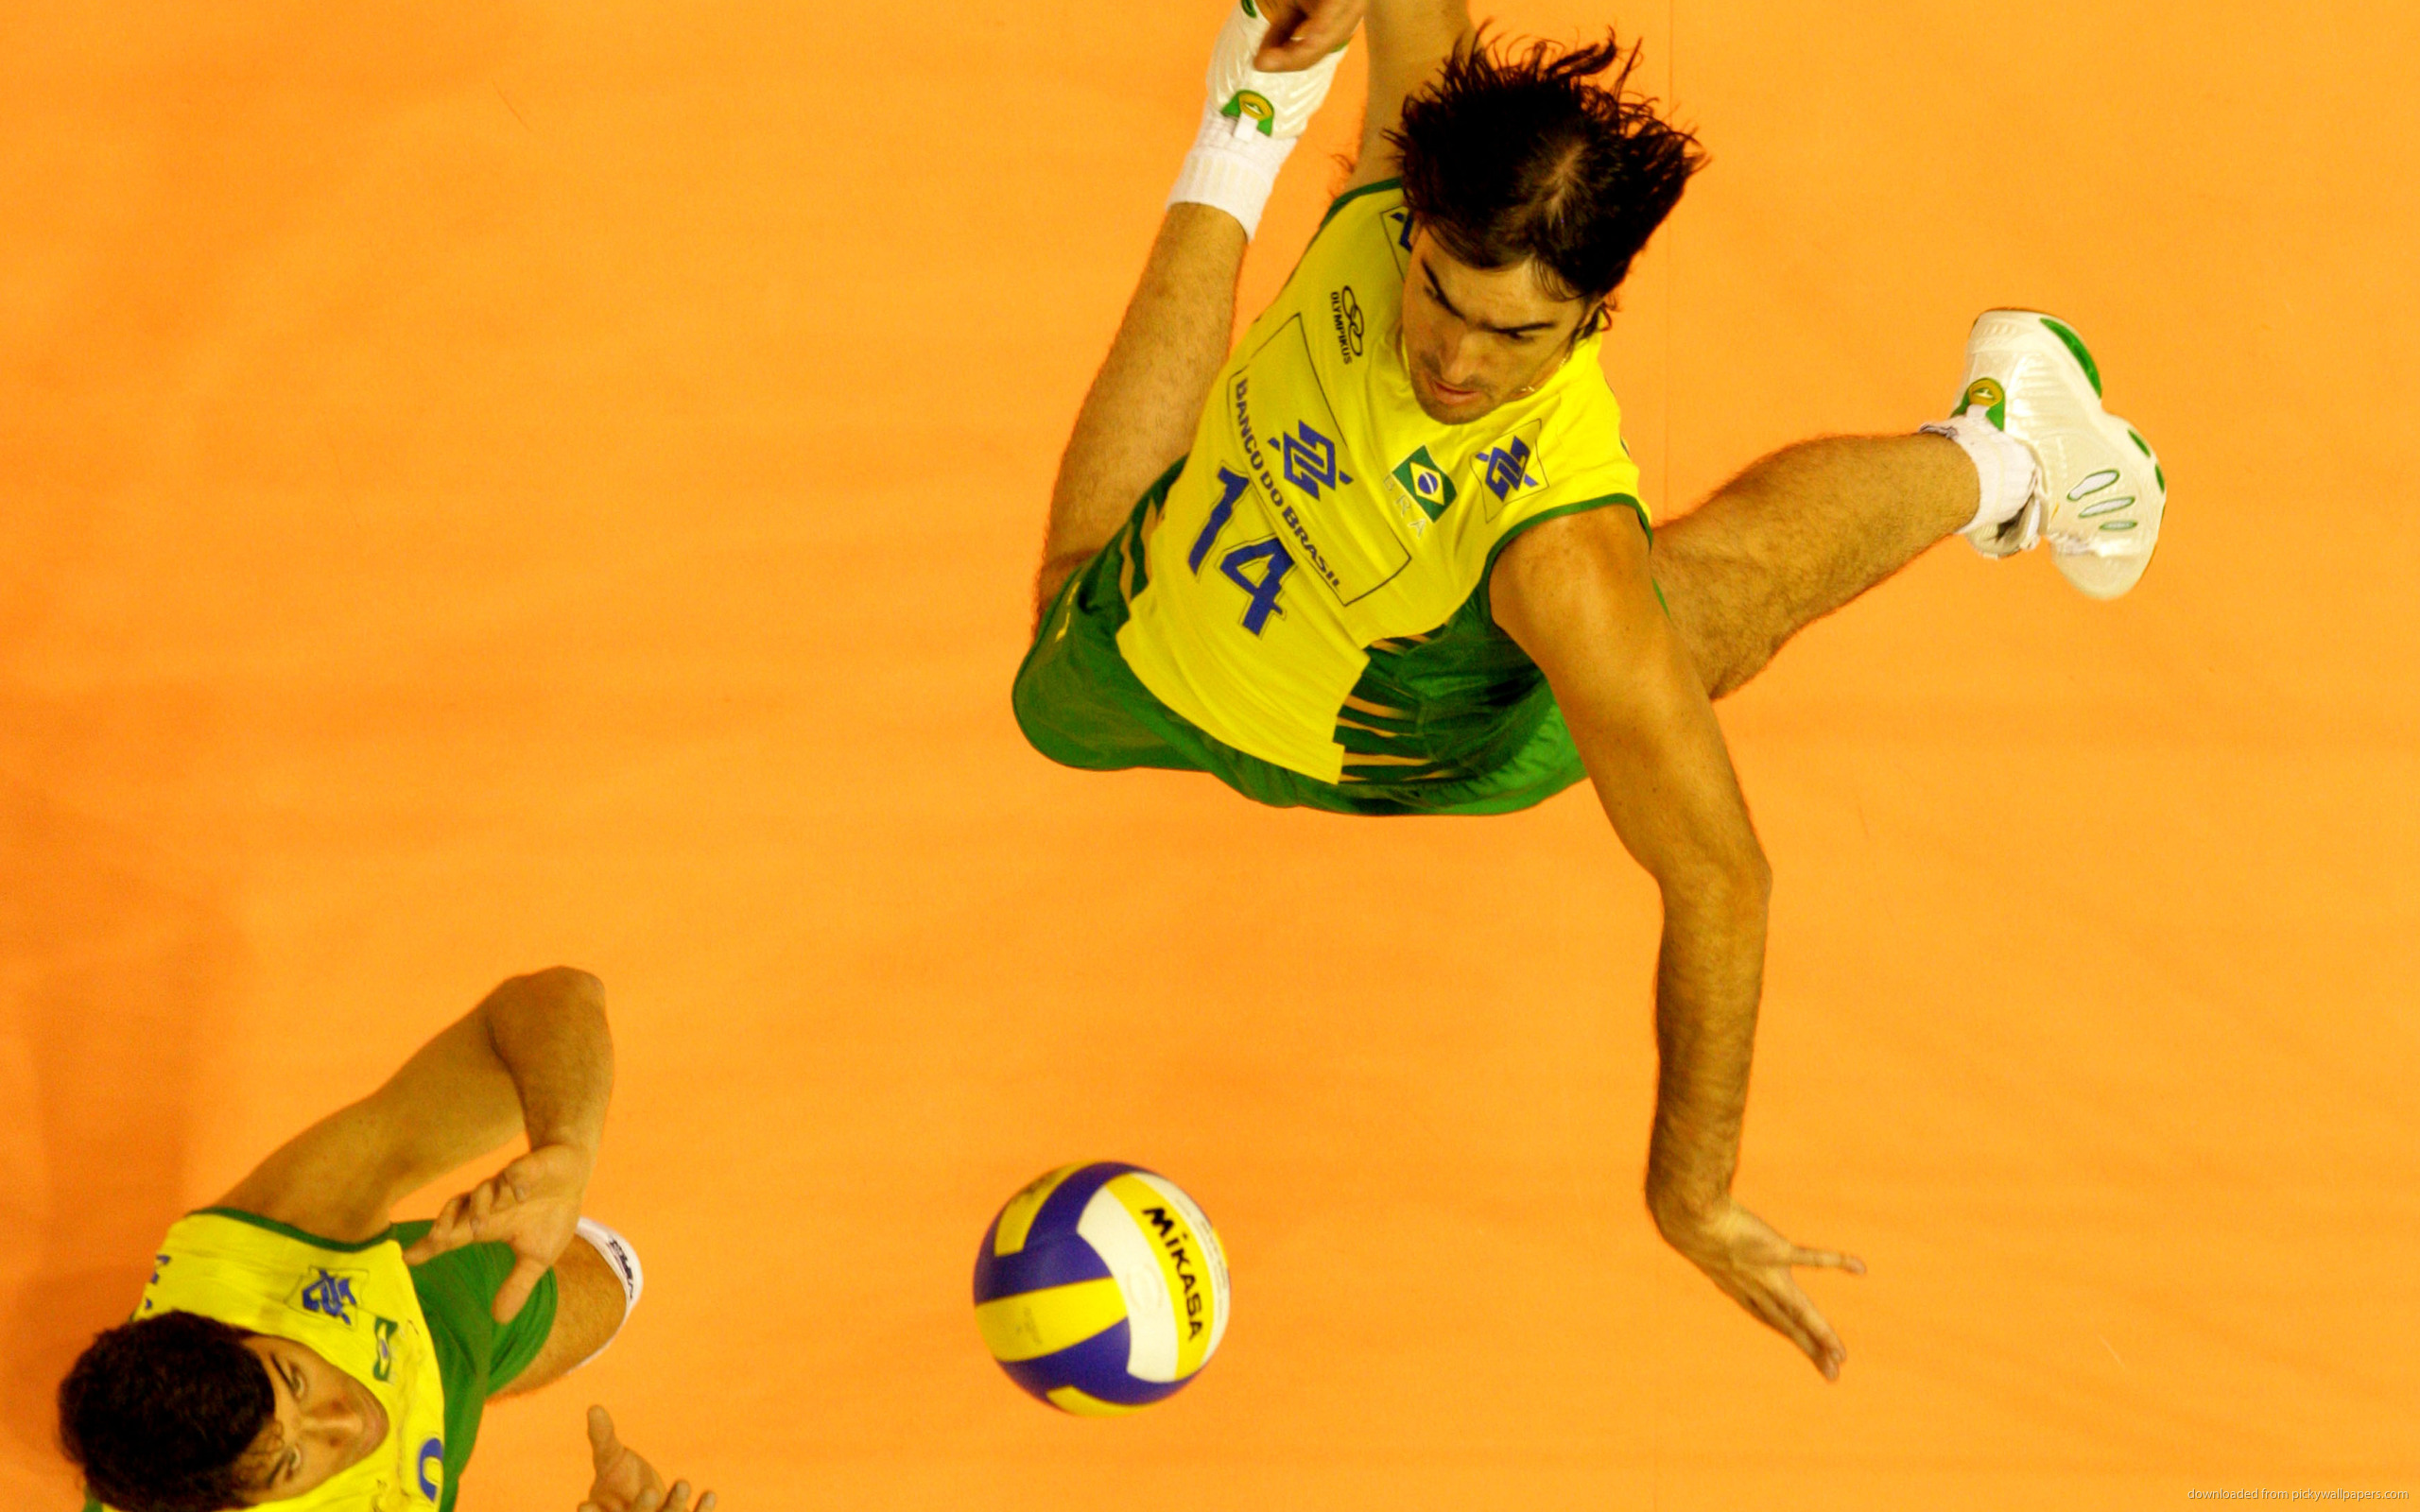 Volleyball Backgrounds Images Crazy Gallery 2560x1600